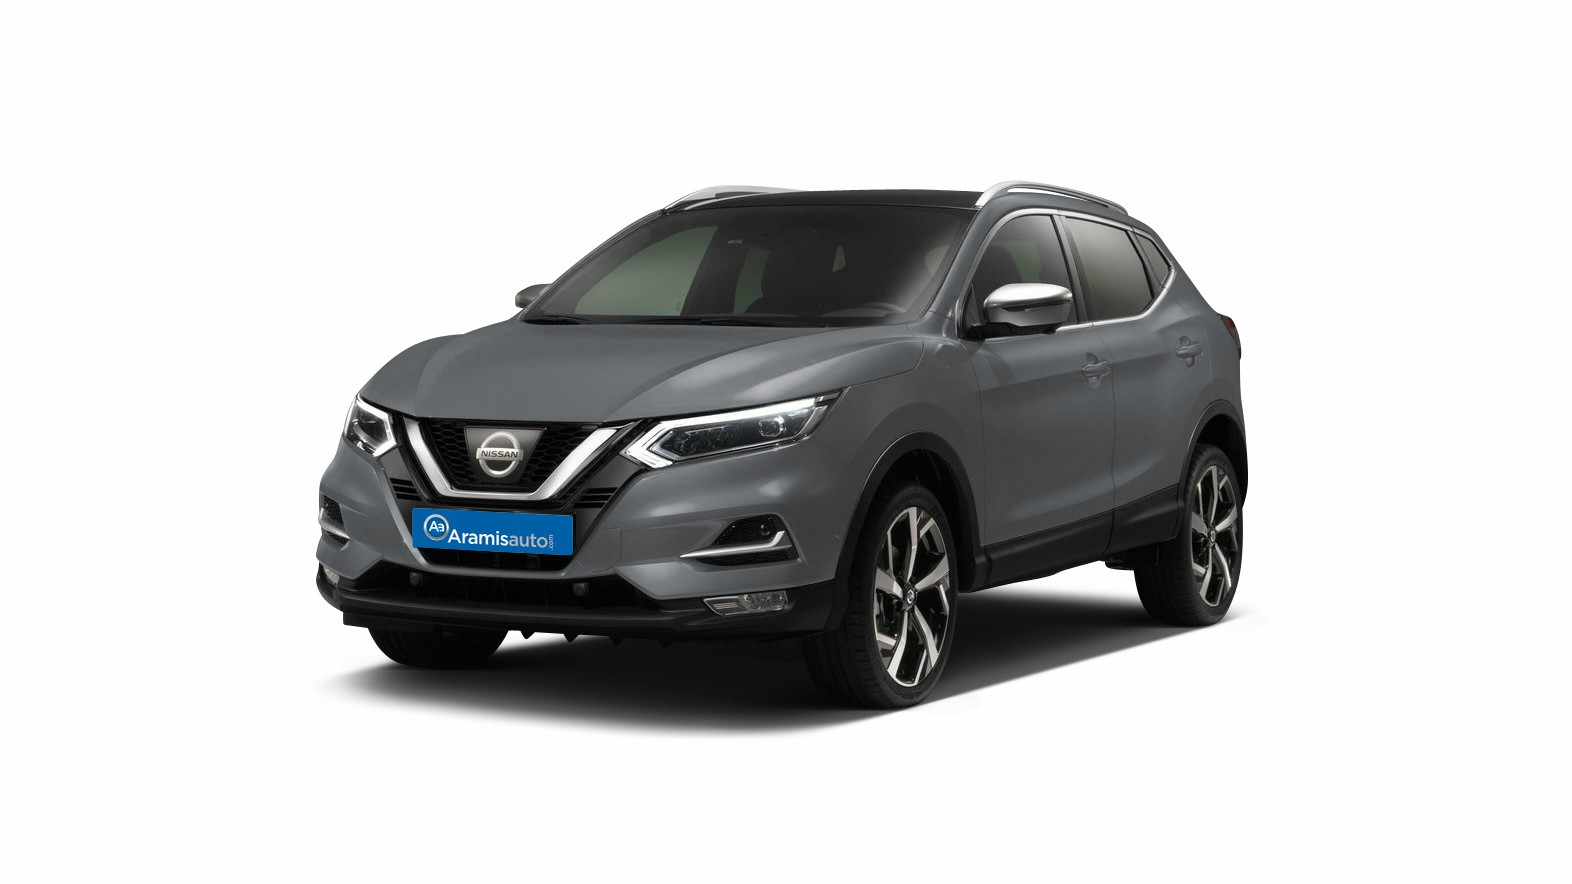 nissan qashqai nouveau 4x2 et suv 5 portes diesel. Black Bedroom Furniture Sets. Home Design Ideas